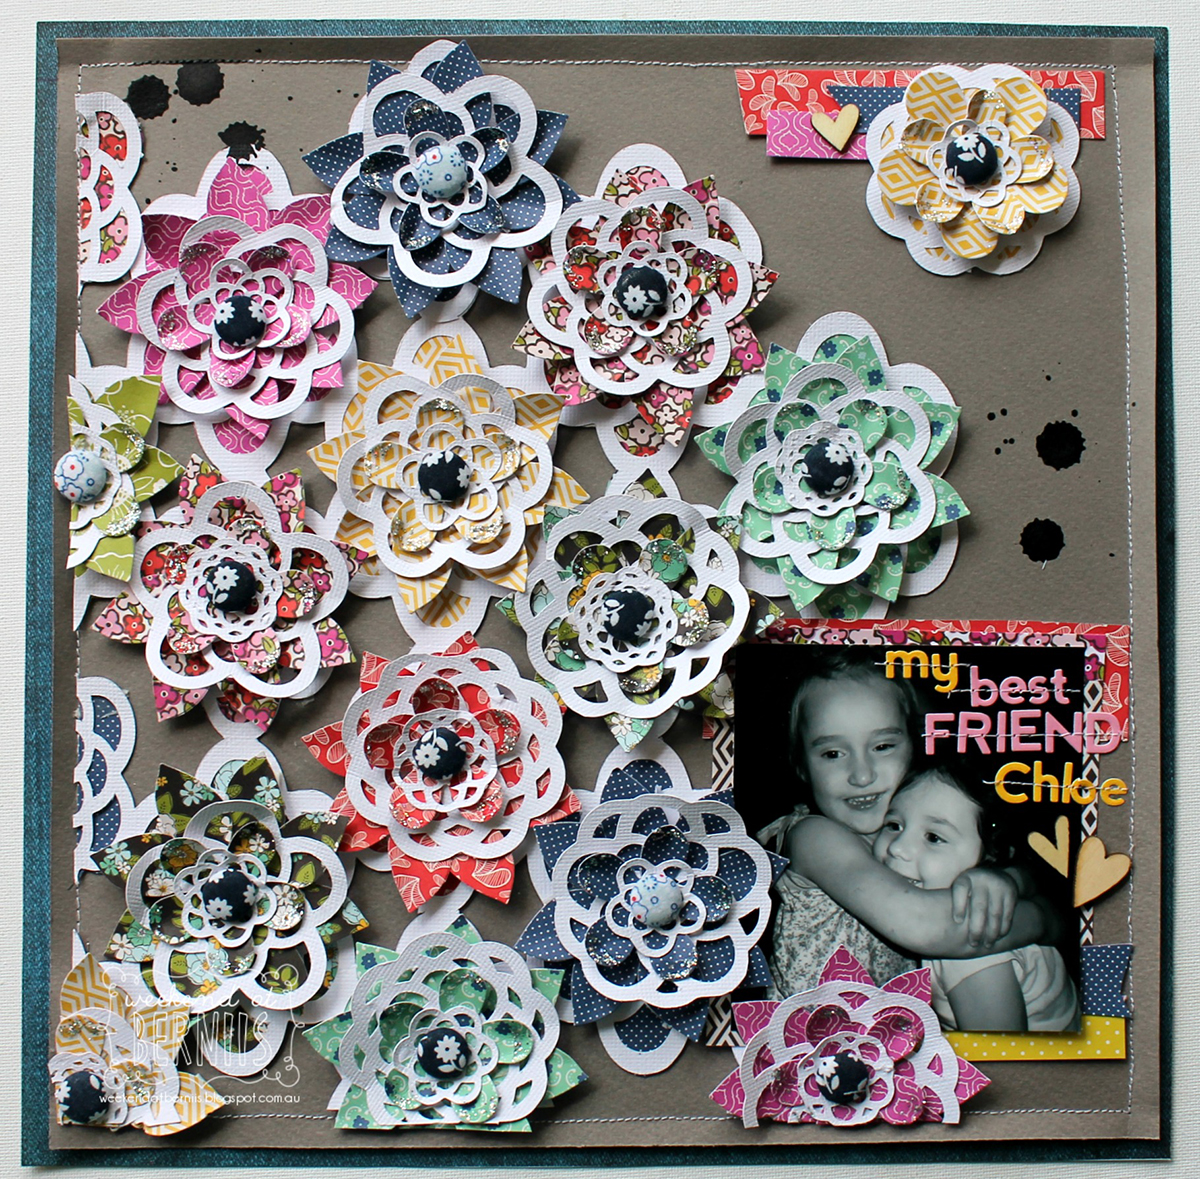 Best Friend Scrapbook Page by Bernii Miller Guest Designer for 17turtles using Lace Flowers Digital Cut File